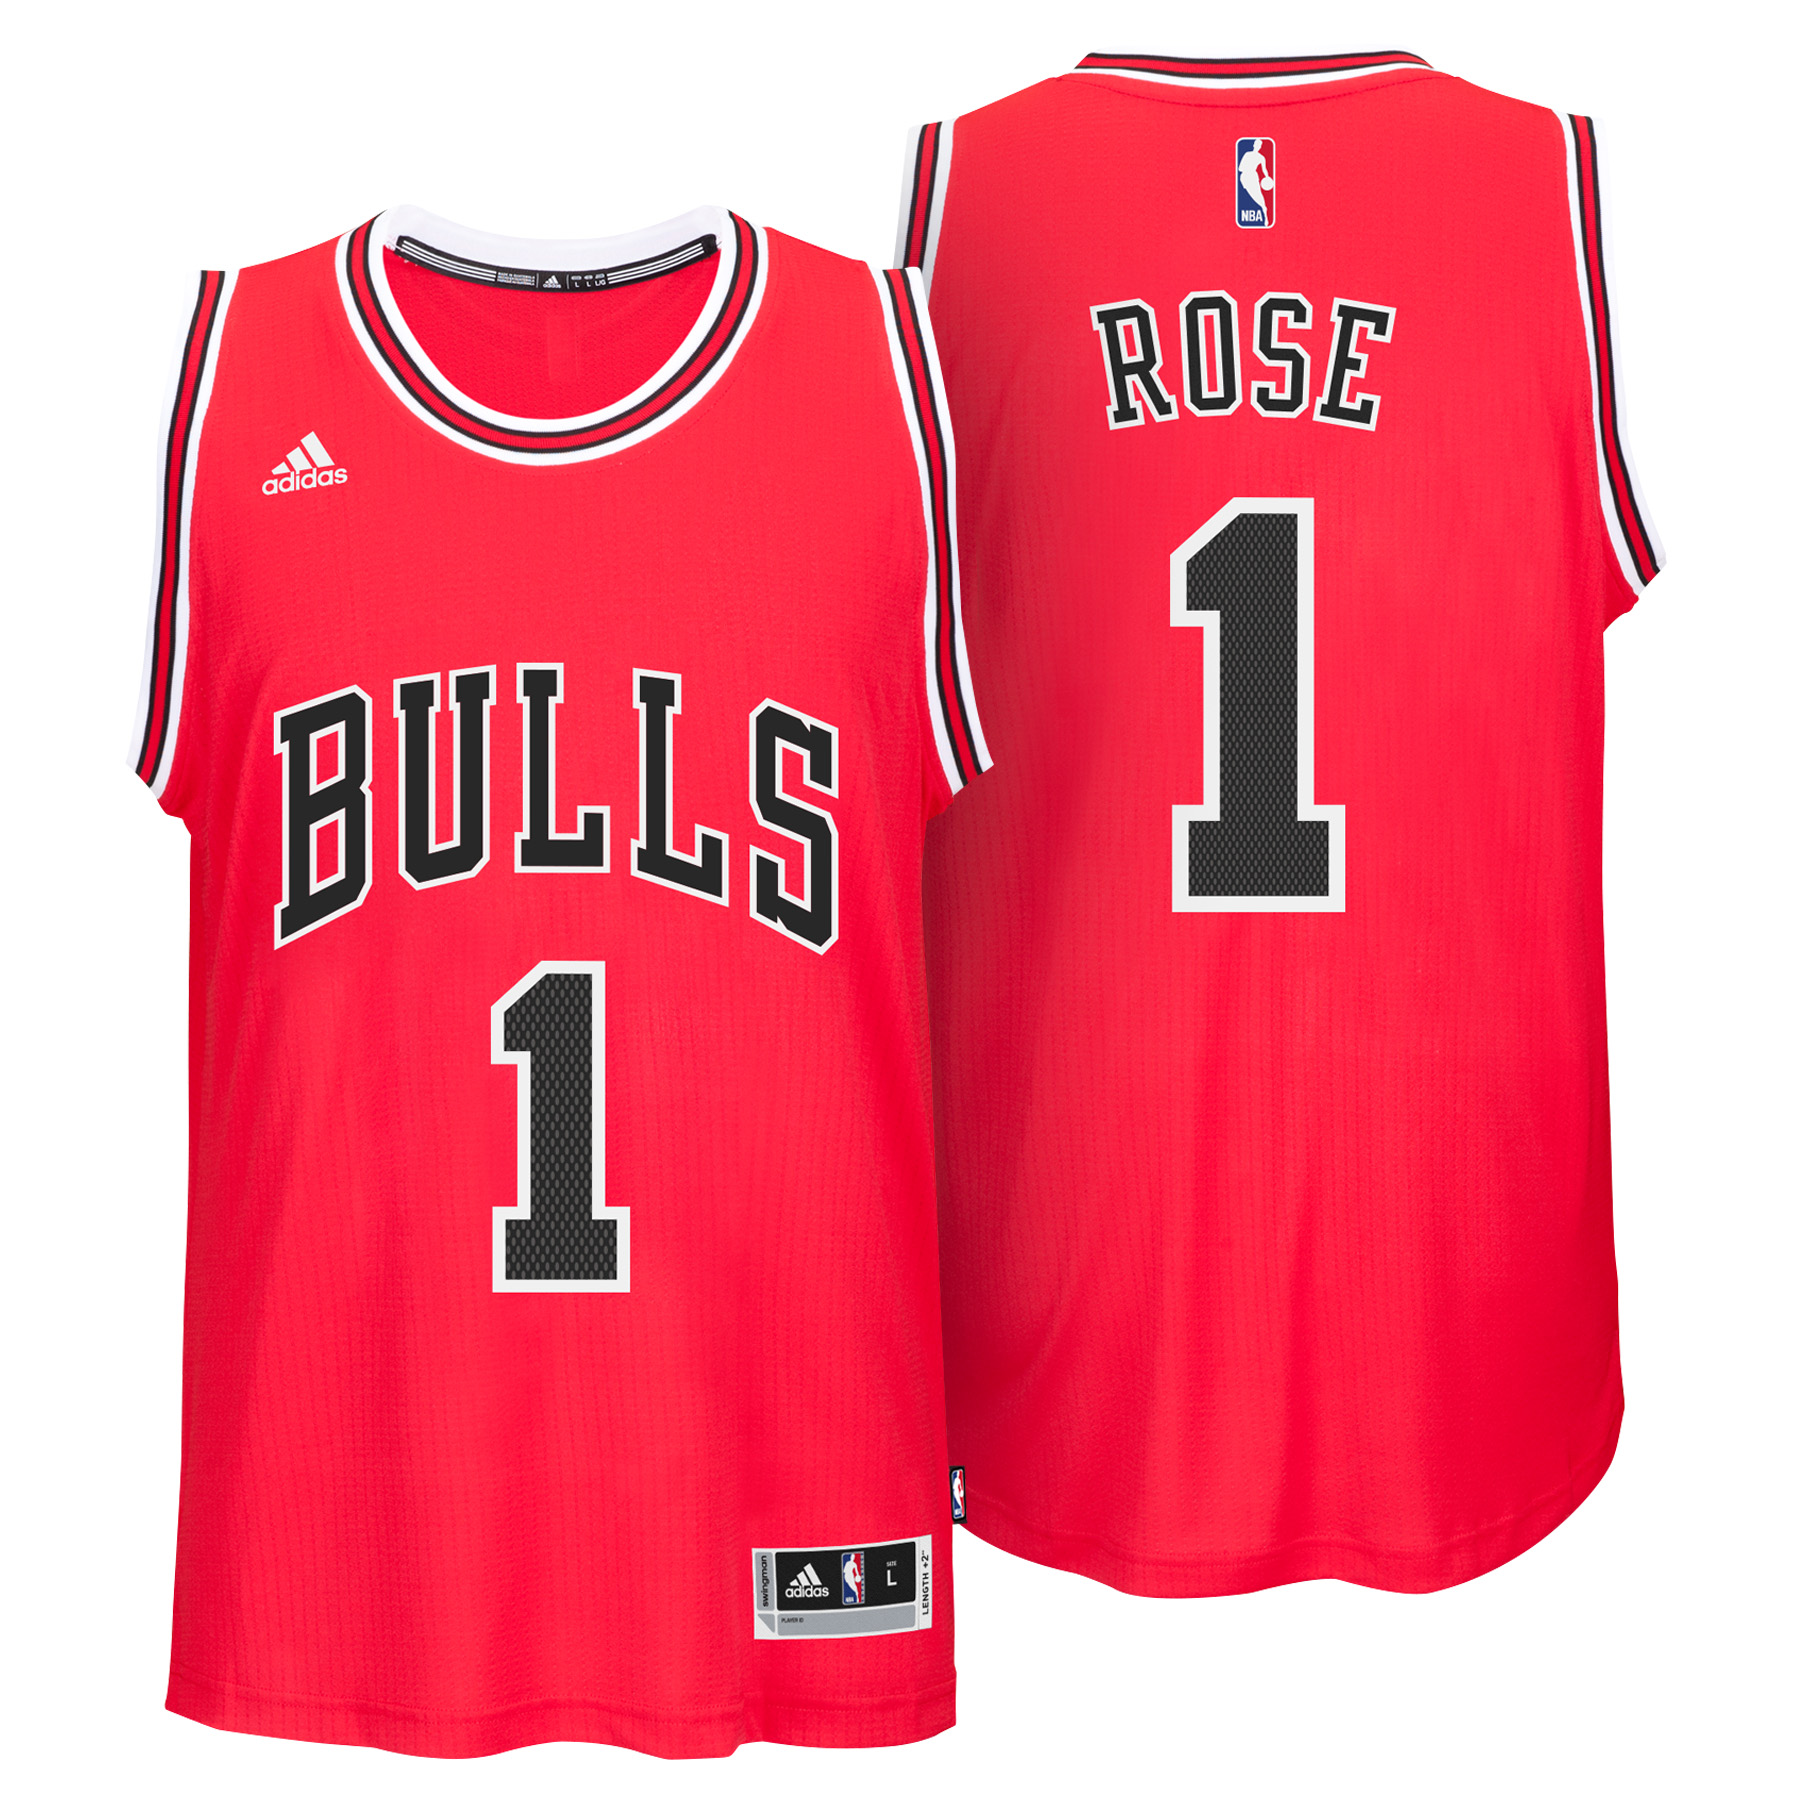 Chicago Bulls Road Swingman Jersey - Derrick Rose - Mens